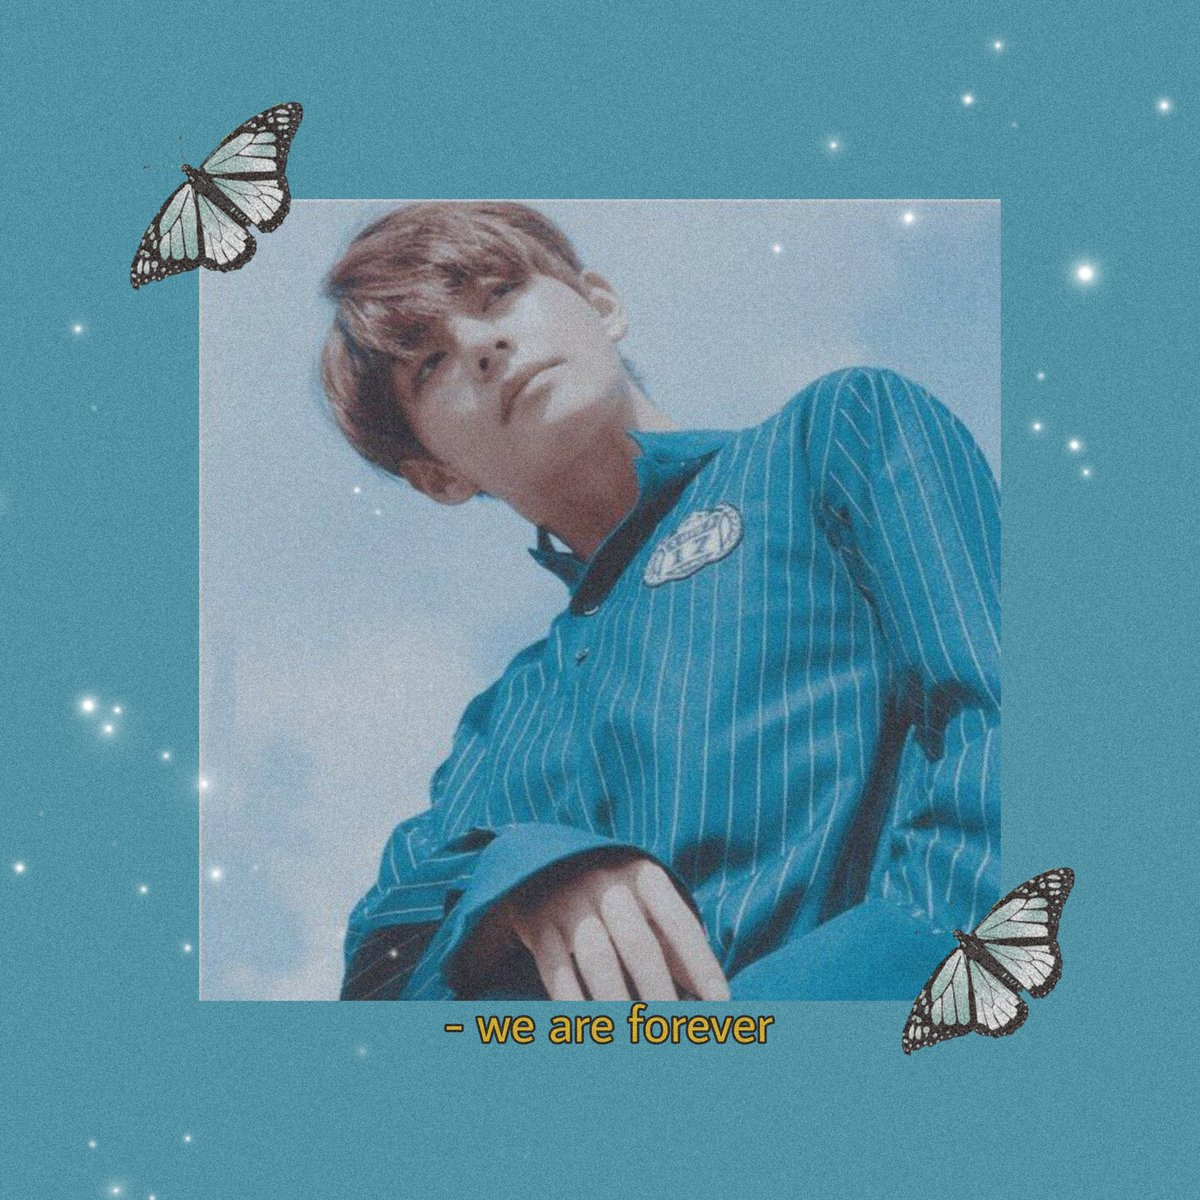 •𝔀𝓮 𝔀𝓮𝓻𝓮 𝓼𝓸 𝓫𝓮𝓪𝓾𝓽𝓲𝓯𝓾𝓵~<3  I like this one tbh don't let it flop juce-Ayo 😔 [ #ARSD #ARSDDAY #ARMYSelcaDay @BTS_twt ] drop your #ARSD bellow! Let's hype each other up<3🥺  And yeah I love saree🌝